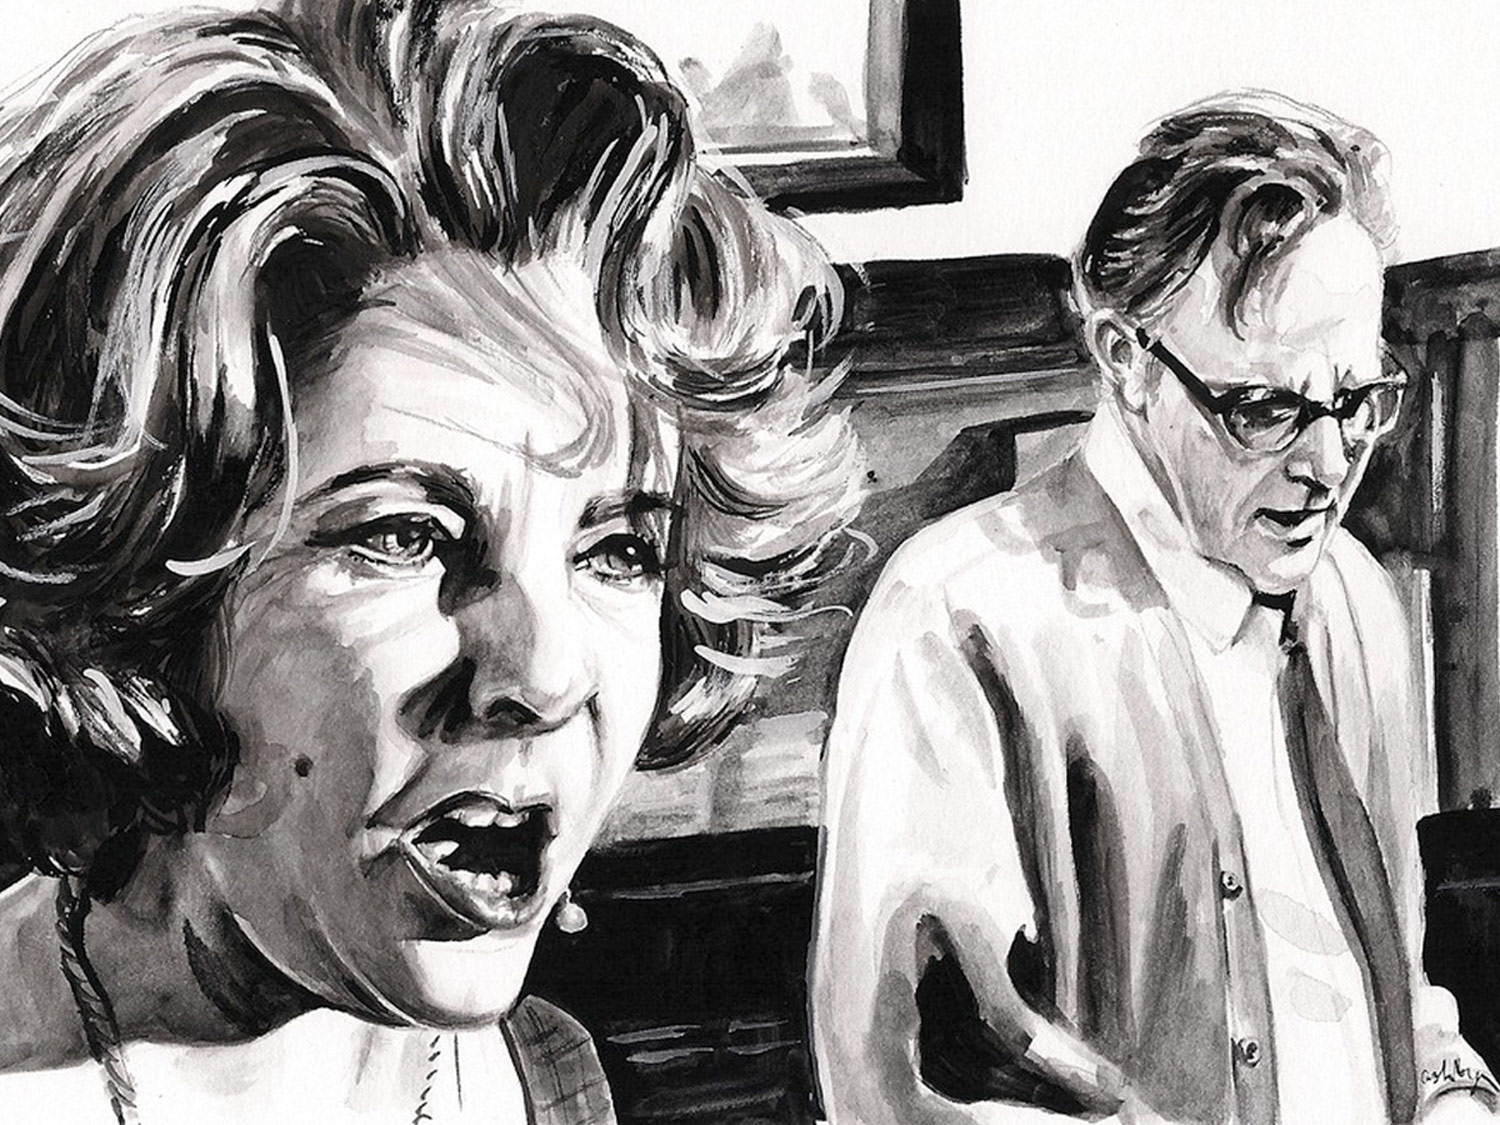 Who's Afraid of Virginia Woolf? | Drawing by Brianna Ashby for Bright Wall/Dark Room